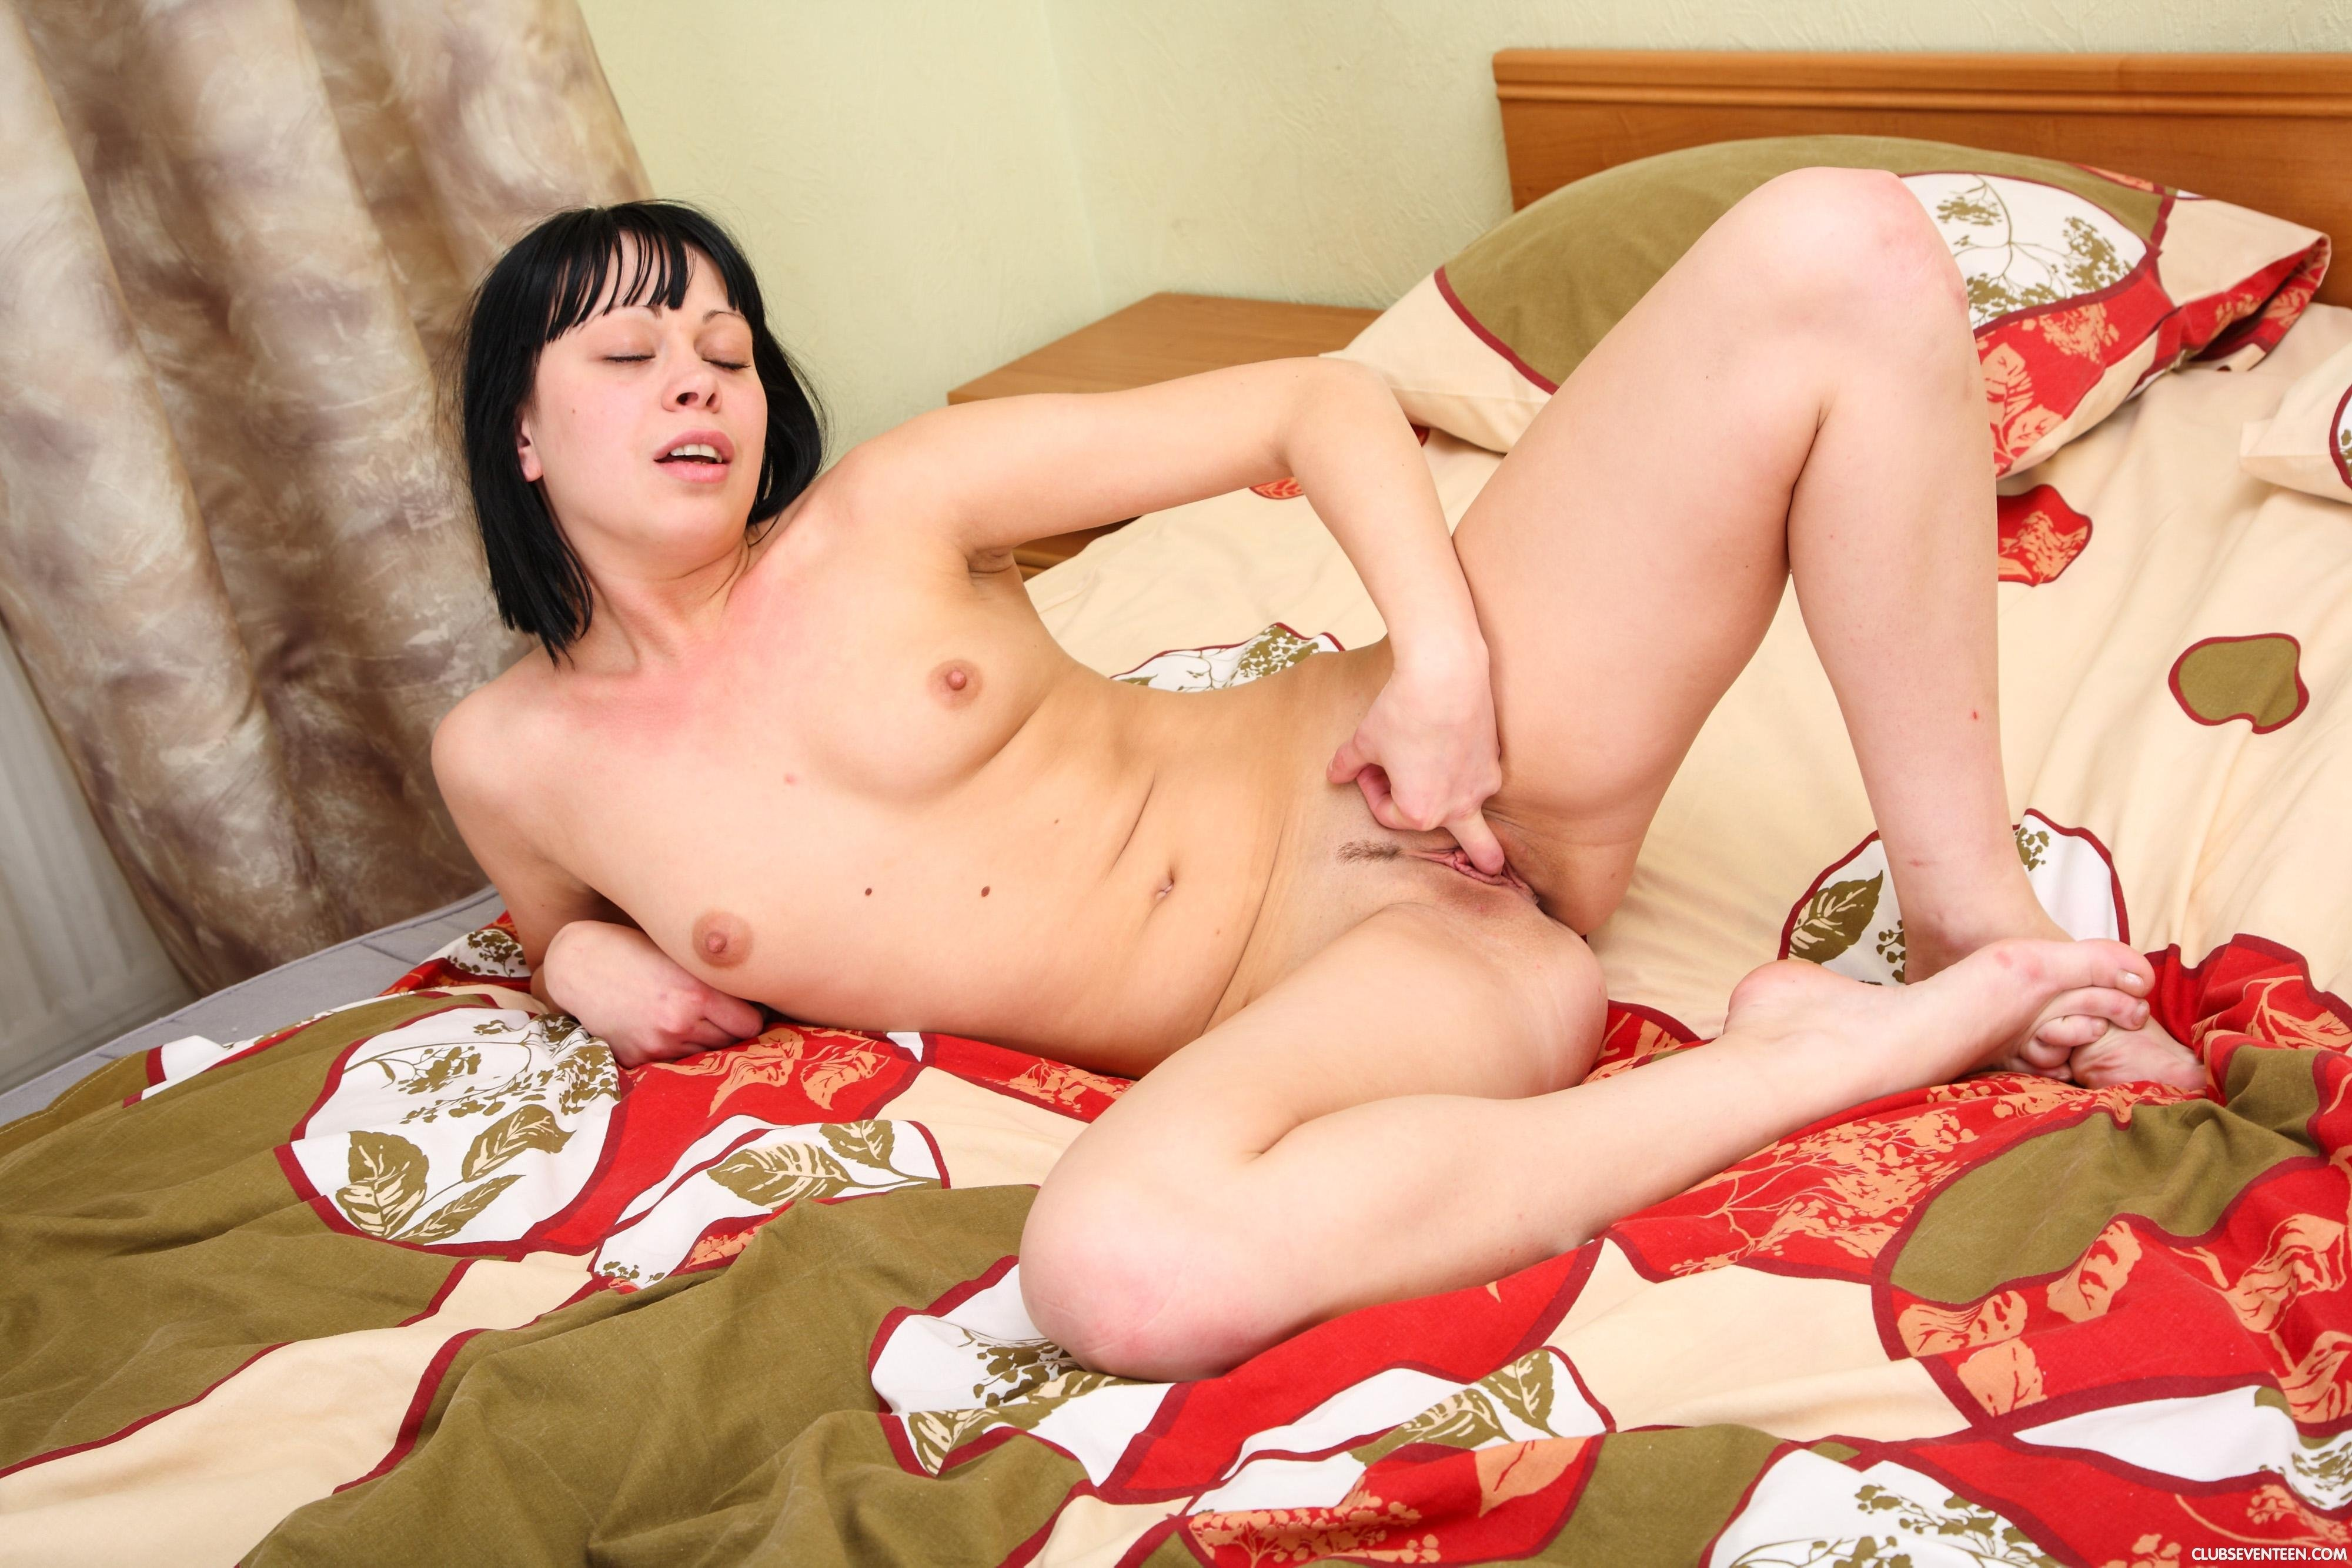 Nudist junior pagent free video